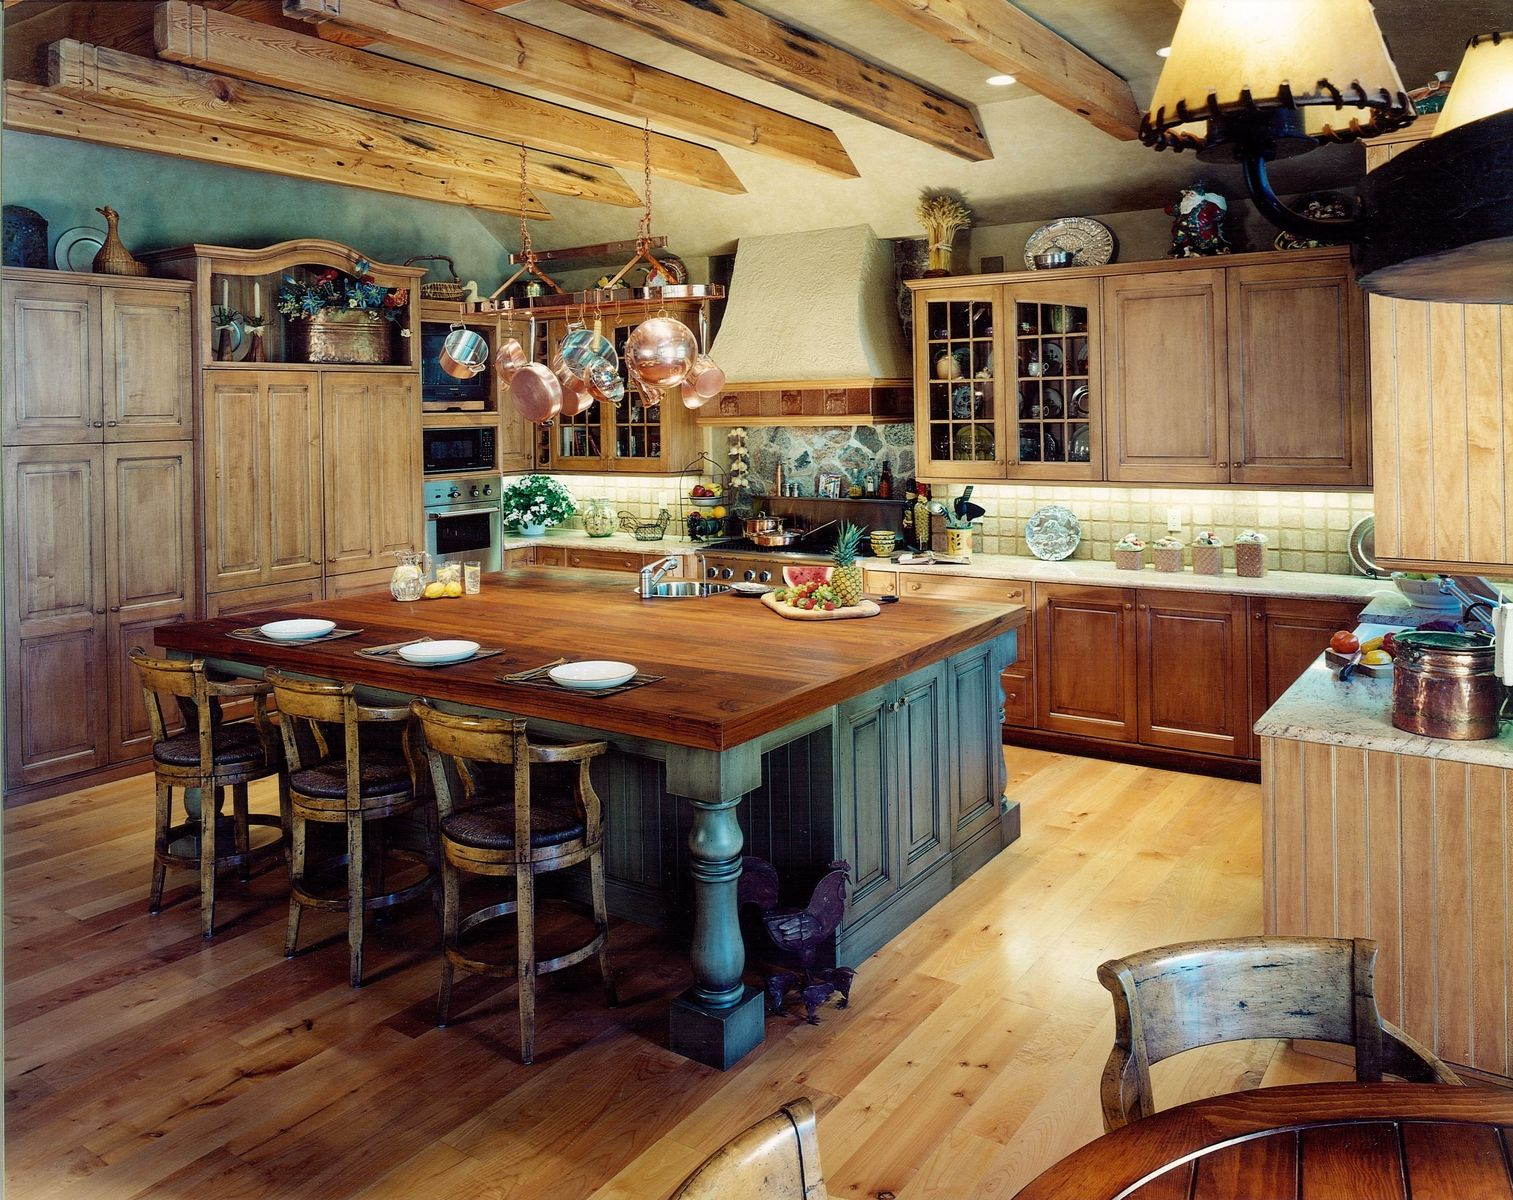 Custom Rustic Kitchens Custom Rustic Mountain Kitchen & Diningcabinets & Design Iron